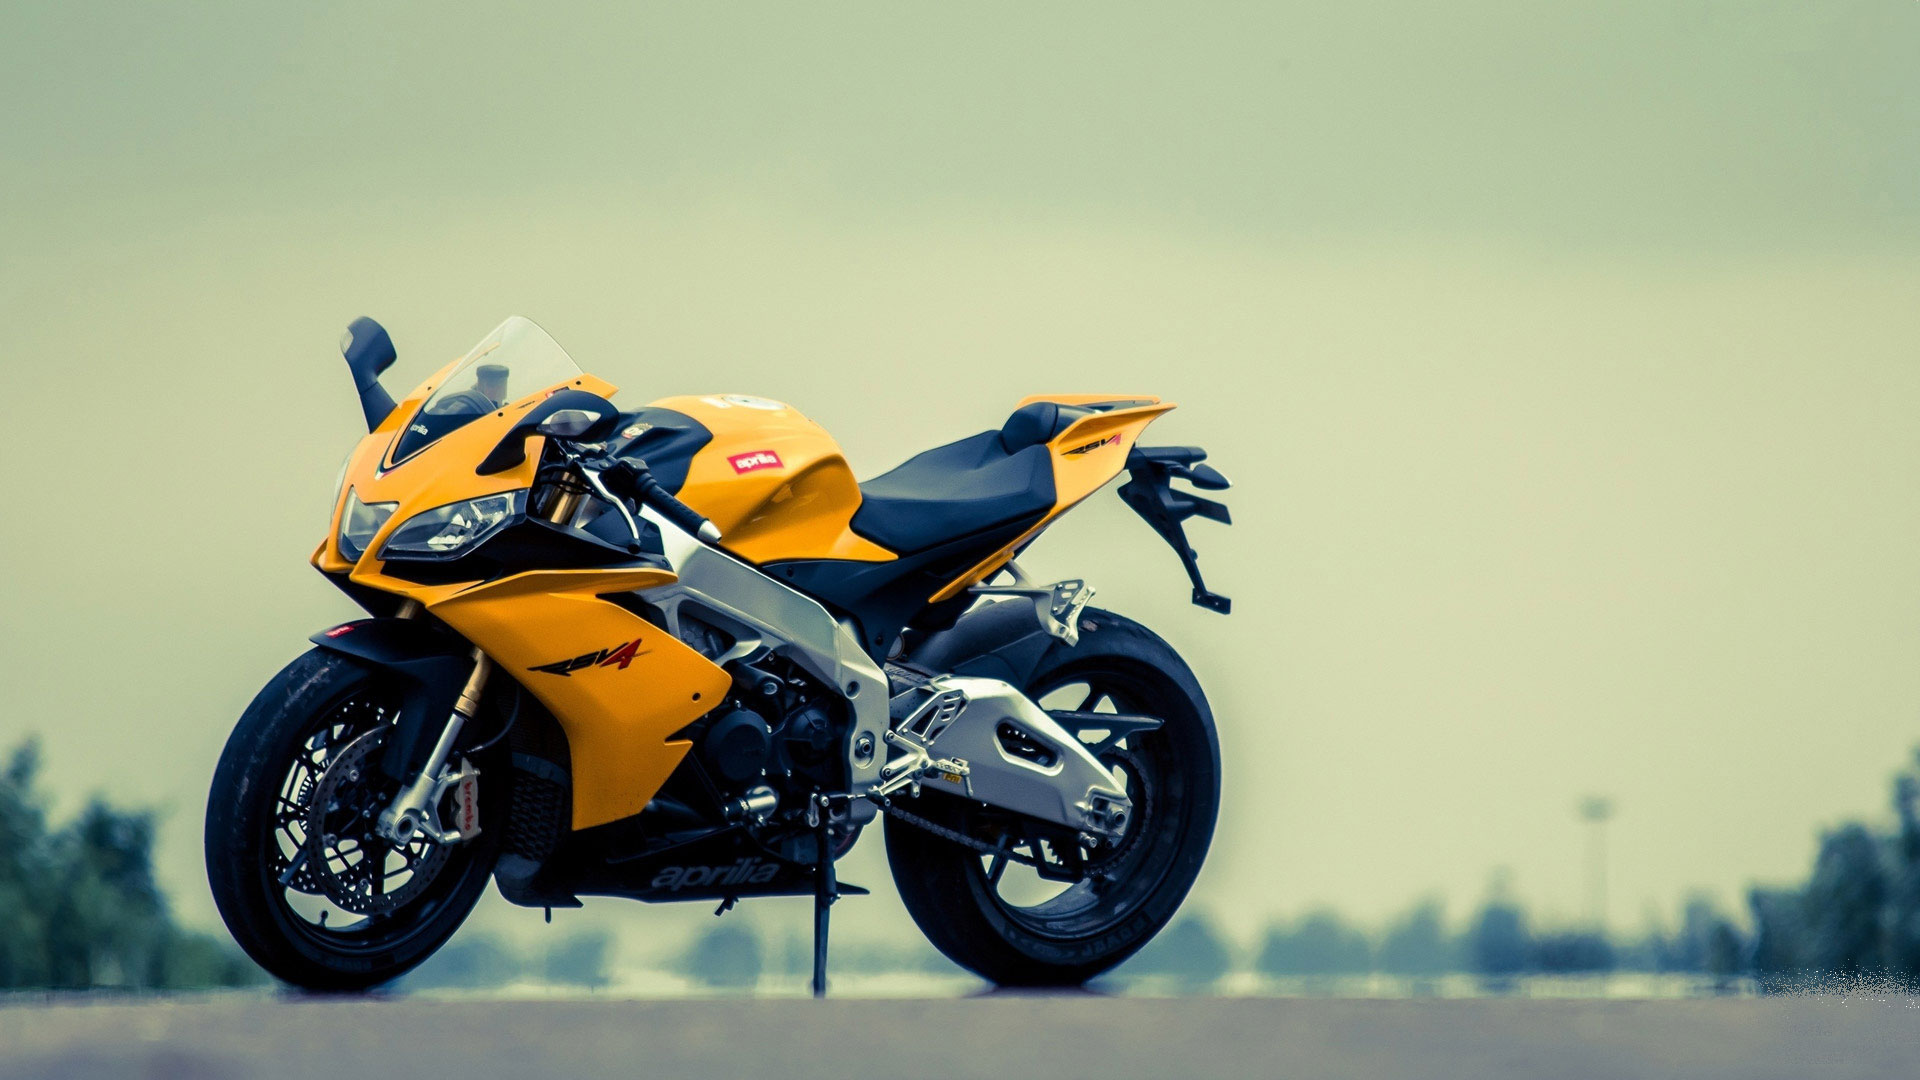 Superbike Hd Wallpaper Full Screen: Download HD Bike Wallpapers 1080p Gallery